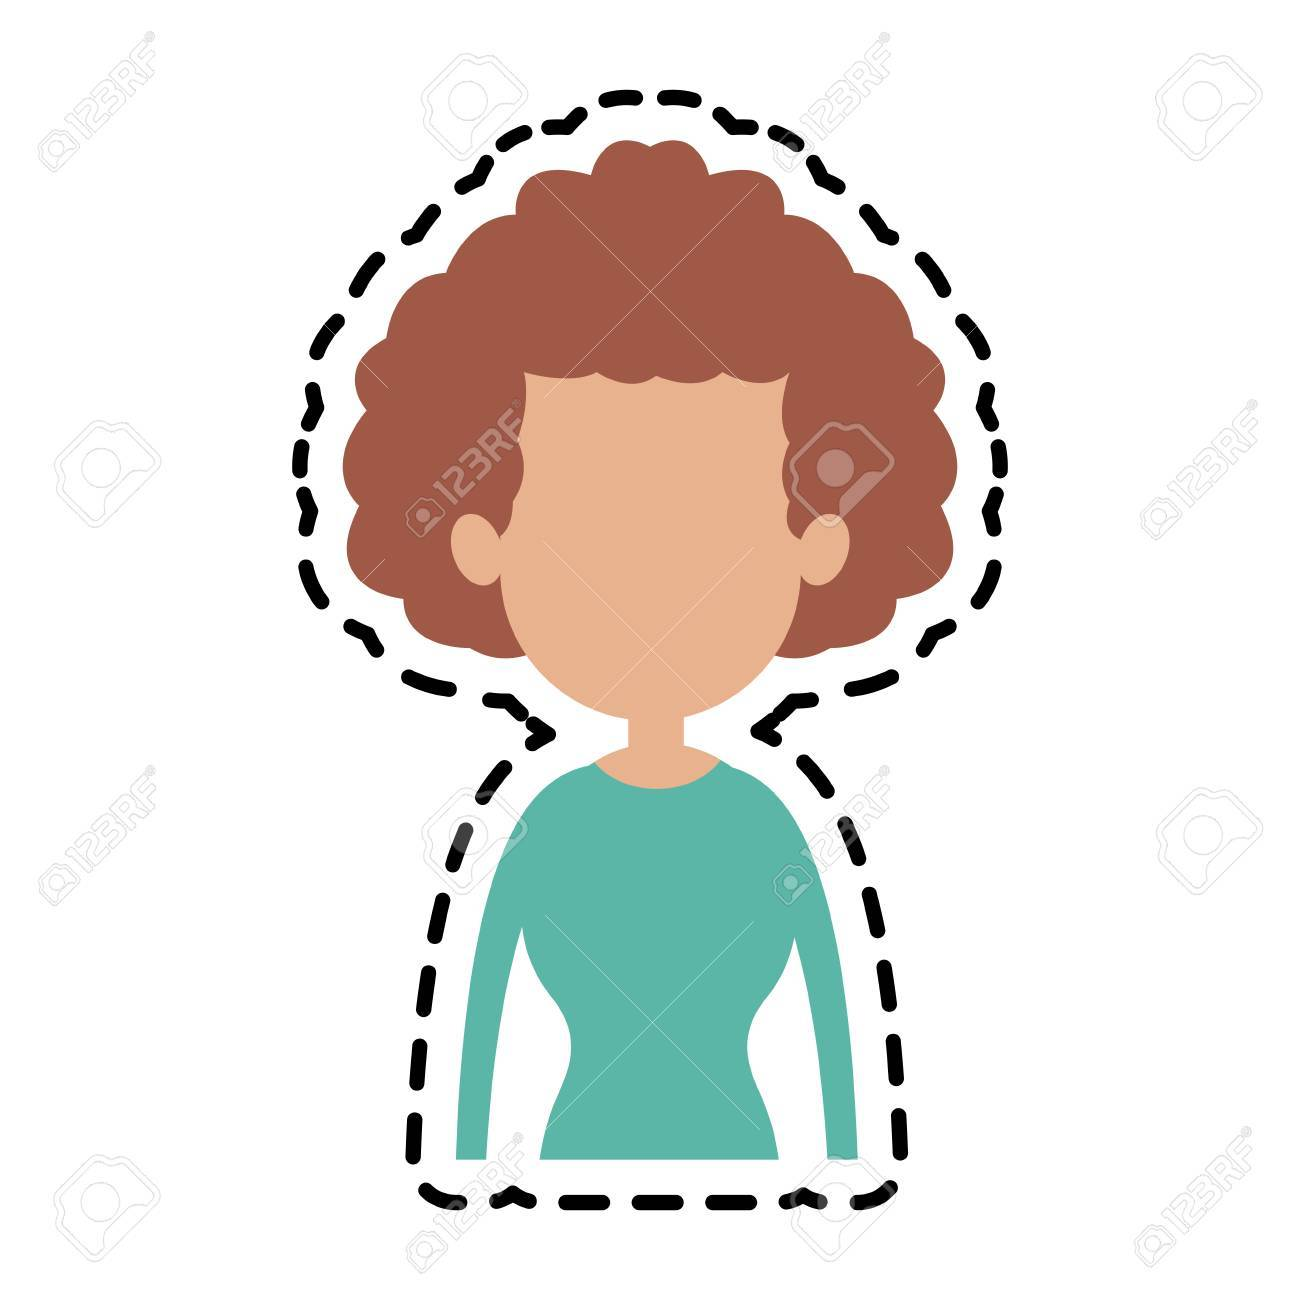 Faceless Woman With Curly Hair Icon Image Vector Illustration